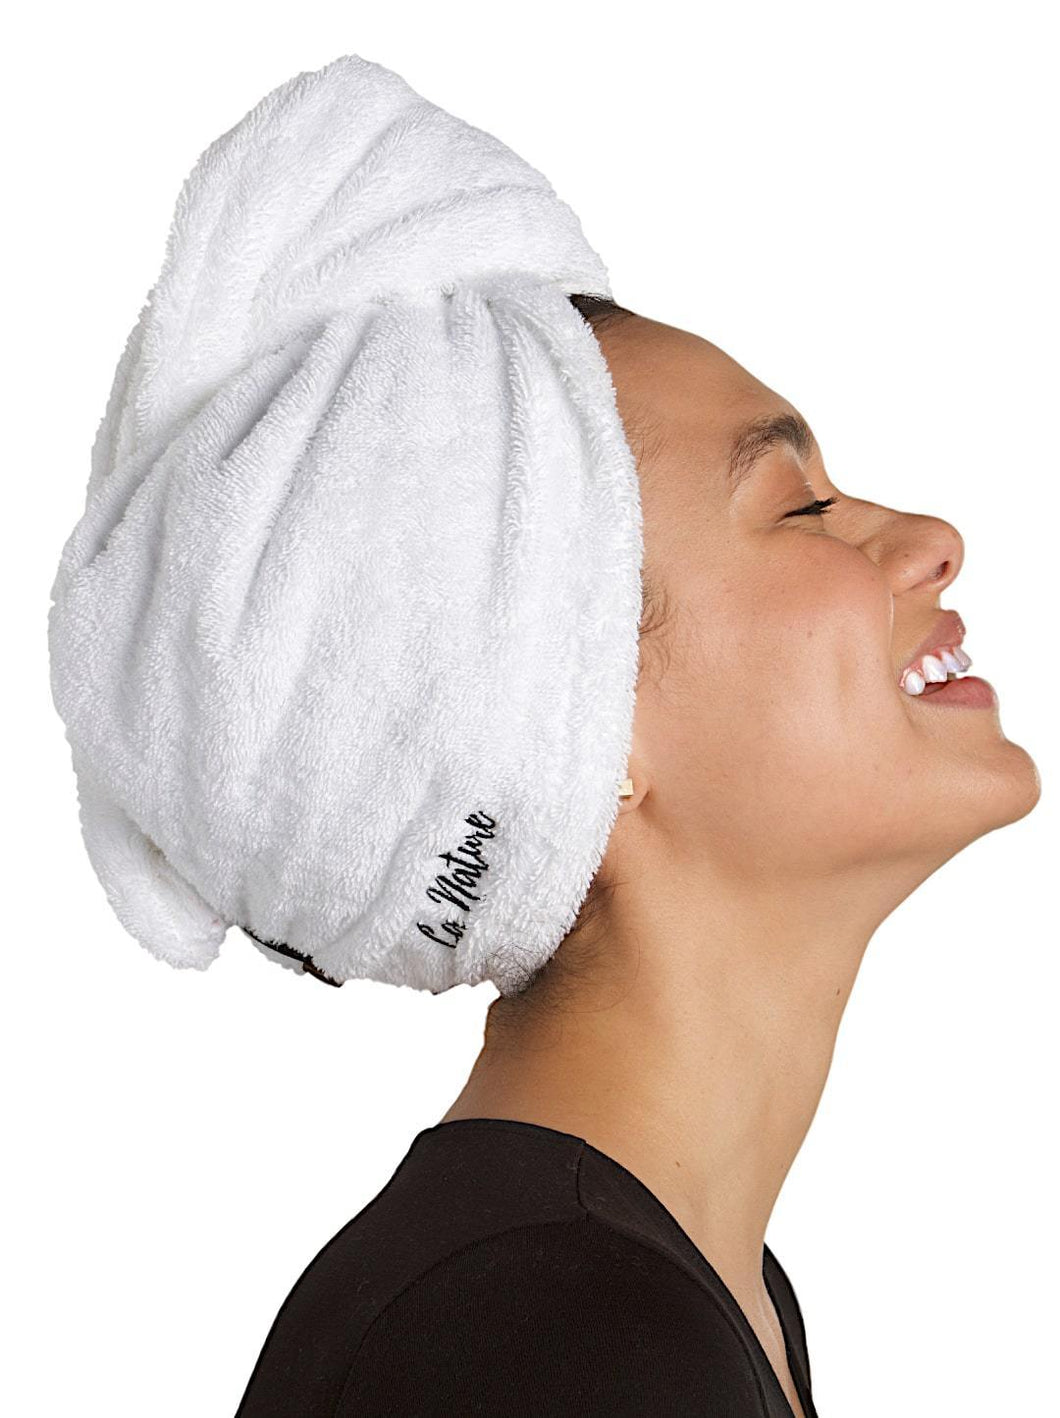 La Nature® Organic Cotton Hair Turban Towel - La Nature Store